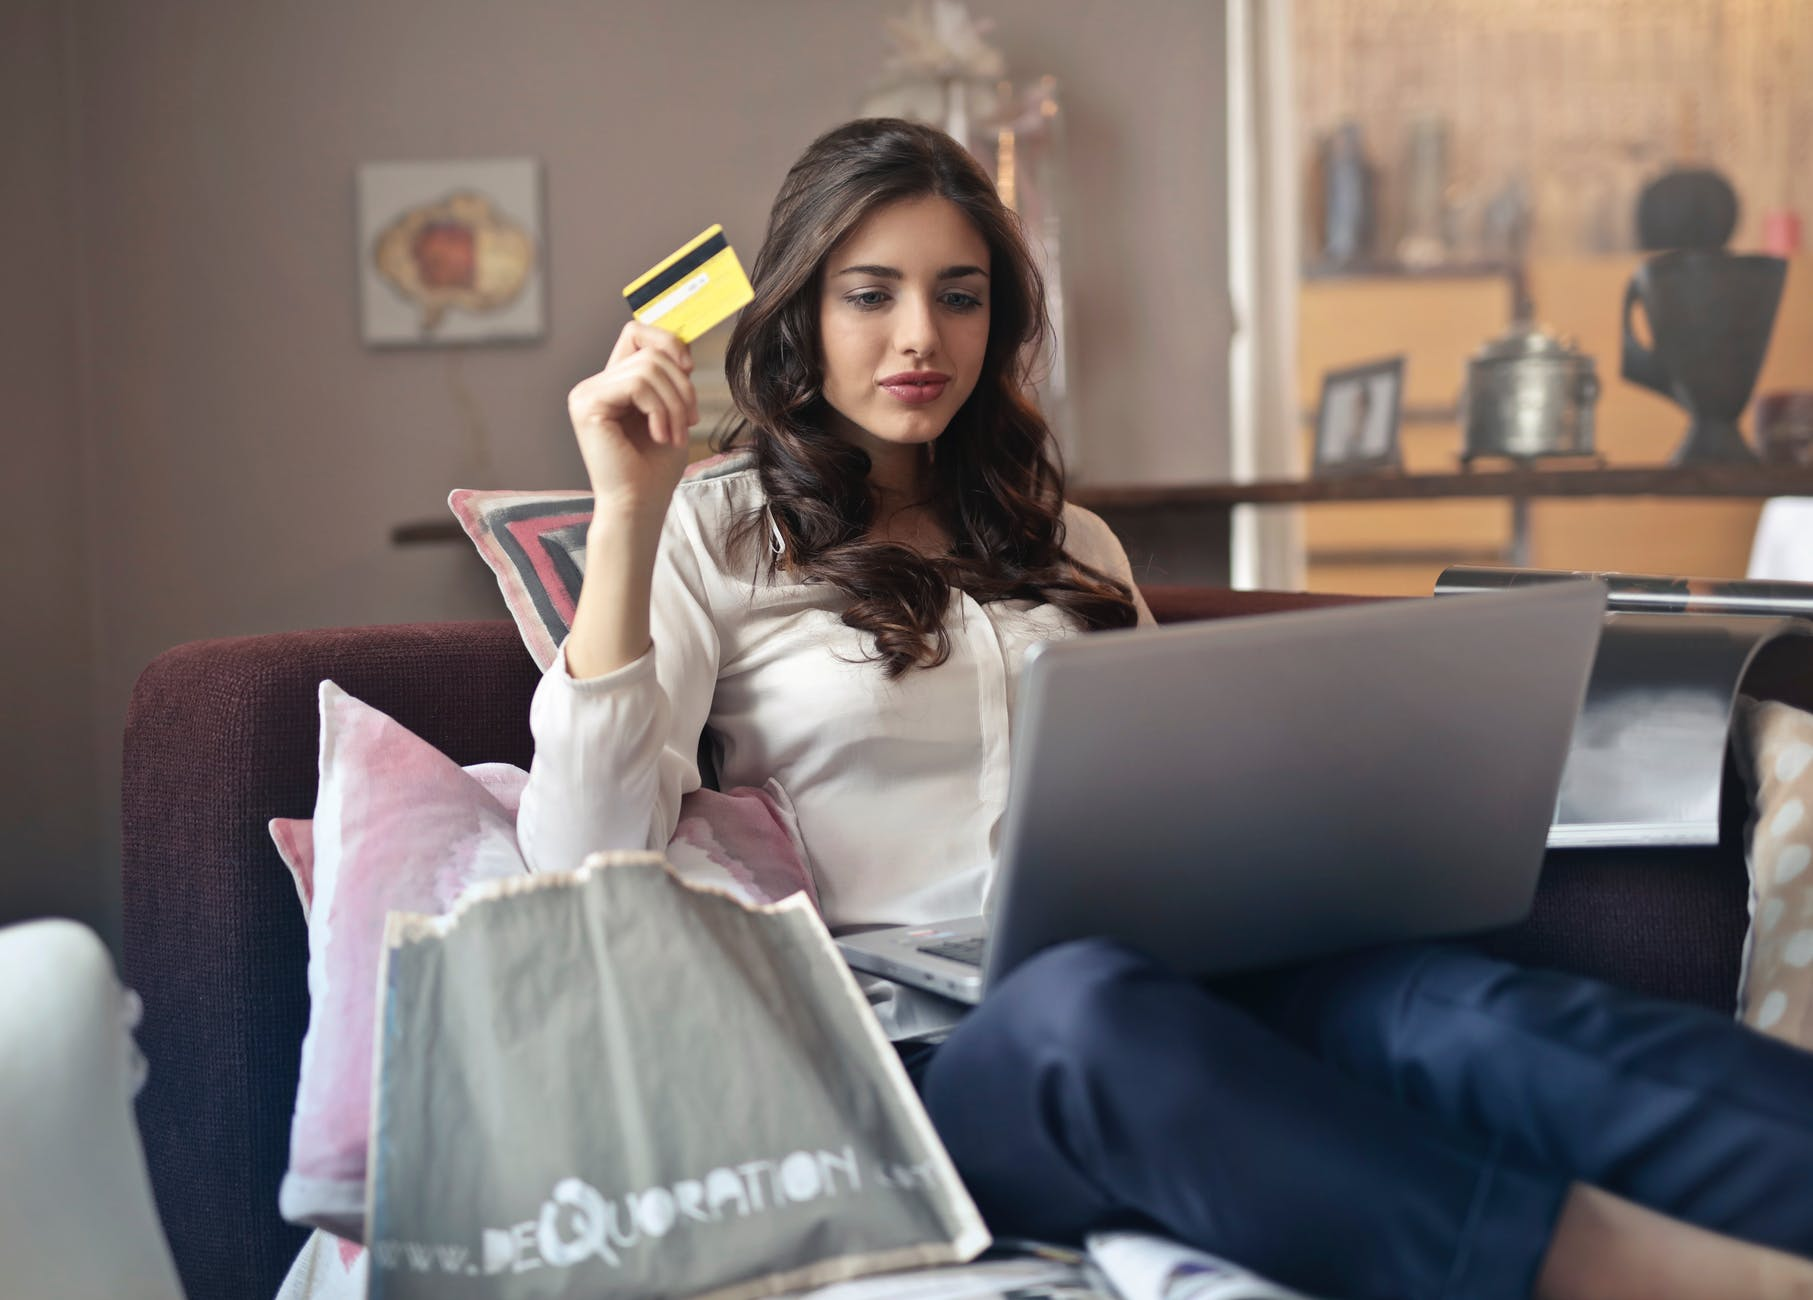 Young woman shopping online, holding her credit card ready to pay.